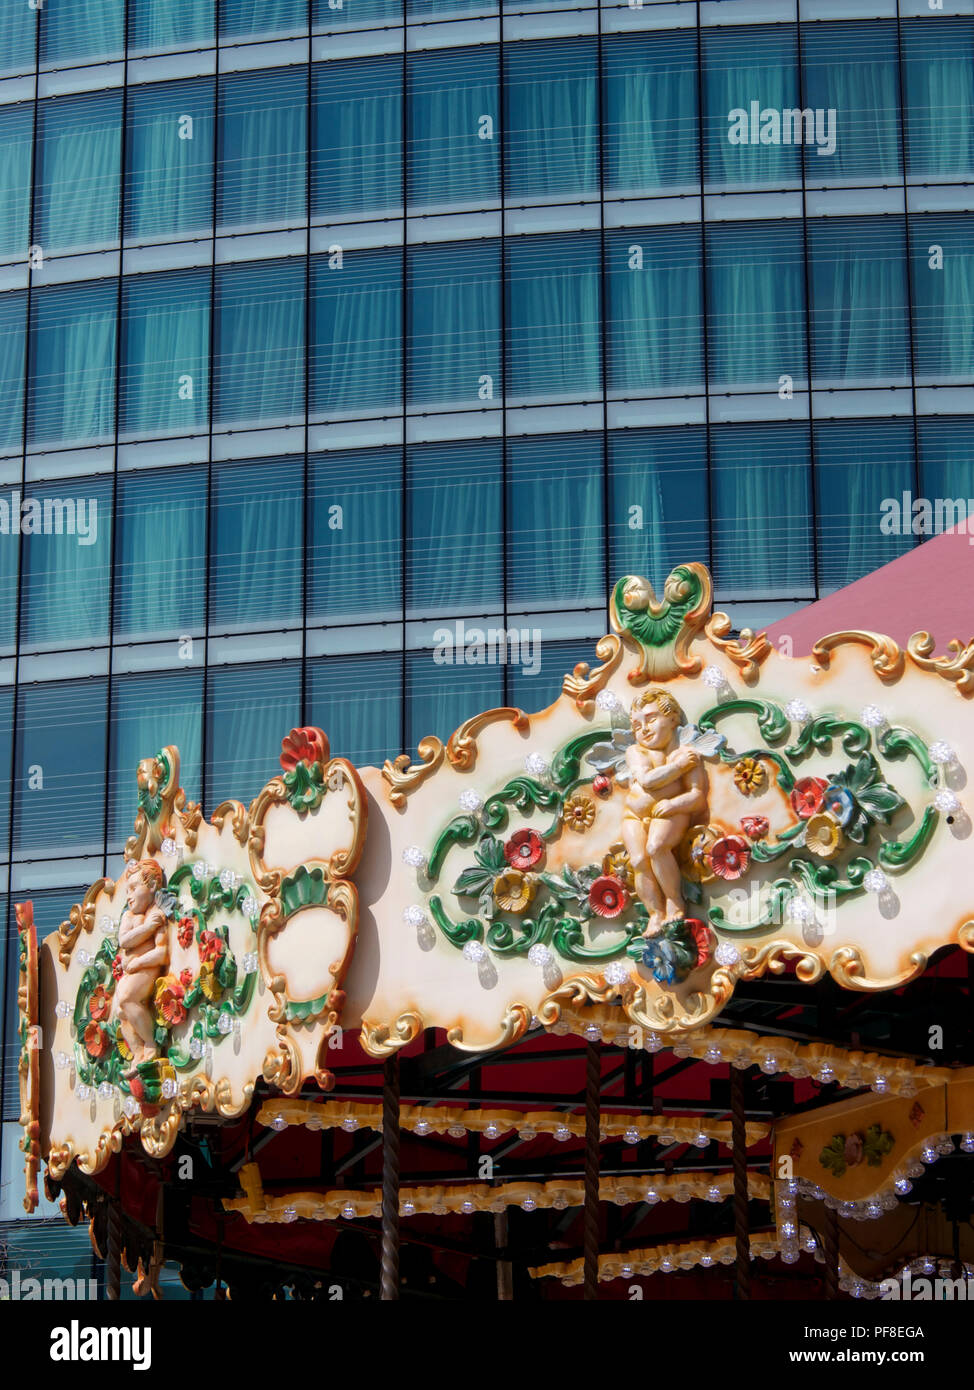 Close-up of the top decorated with a carousel in front of a glass building. France - Stock Image